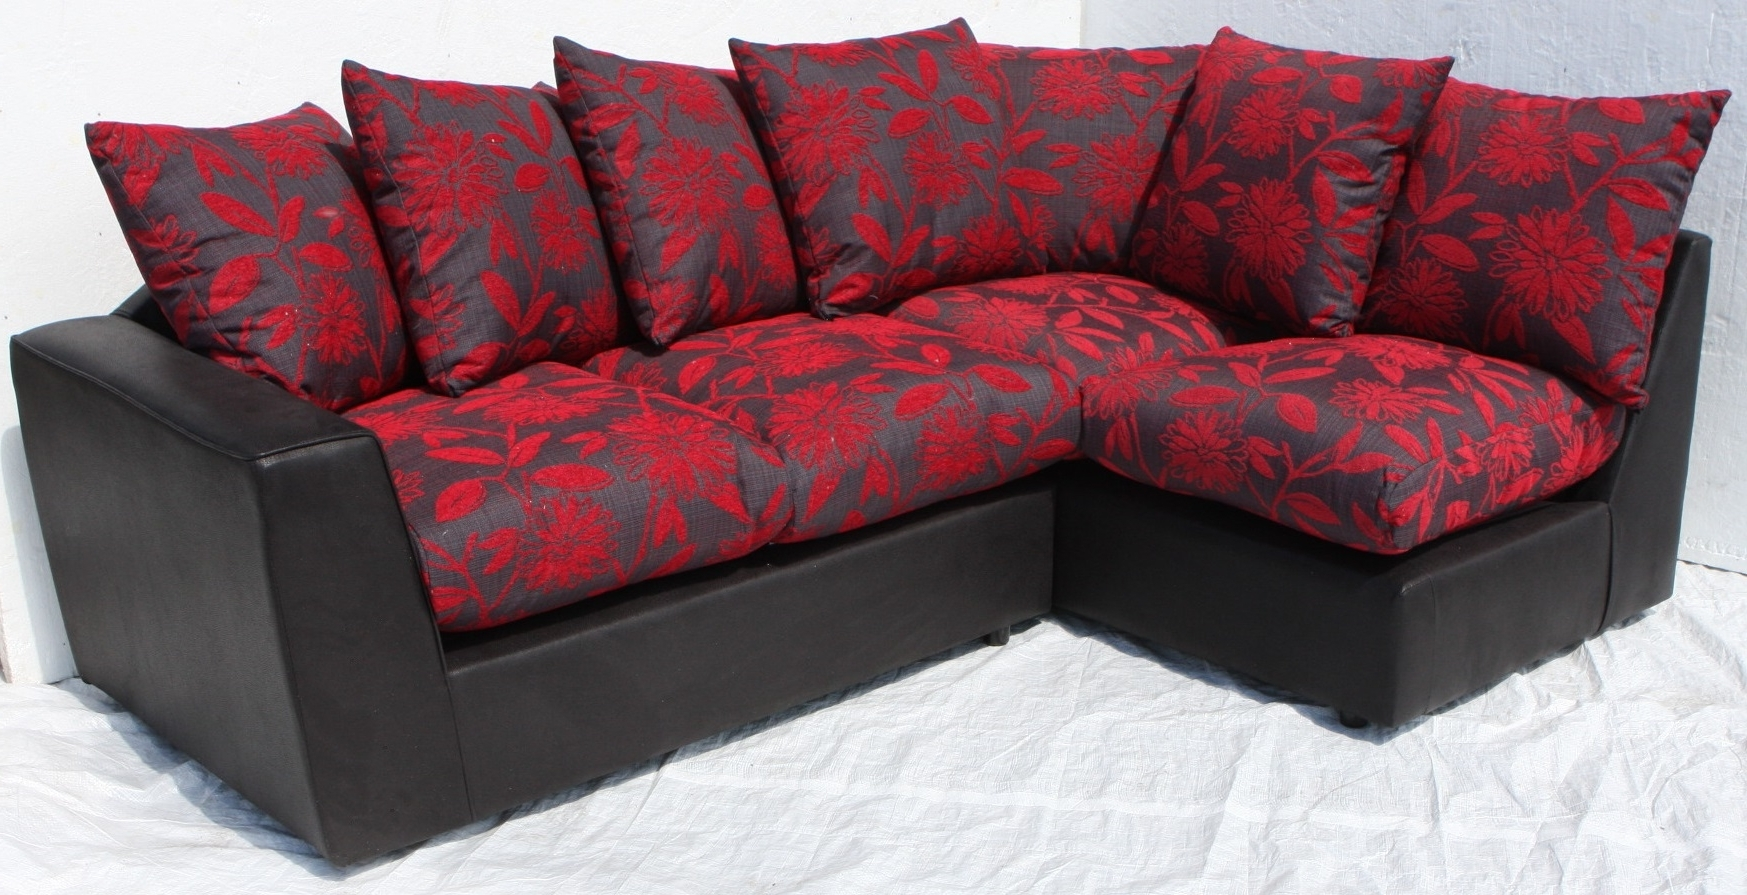 Helibeds Same Day Or Next Day Delivery Of – Sofa's – Harry Corner Regarding Recent Red And Black Sofas (View 9 of 15)